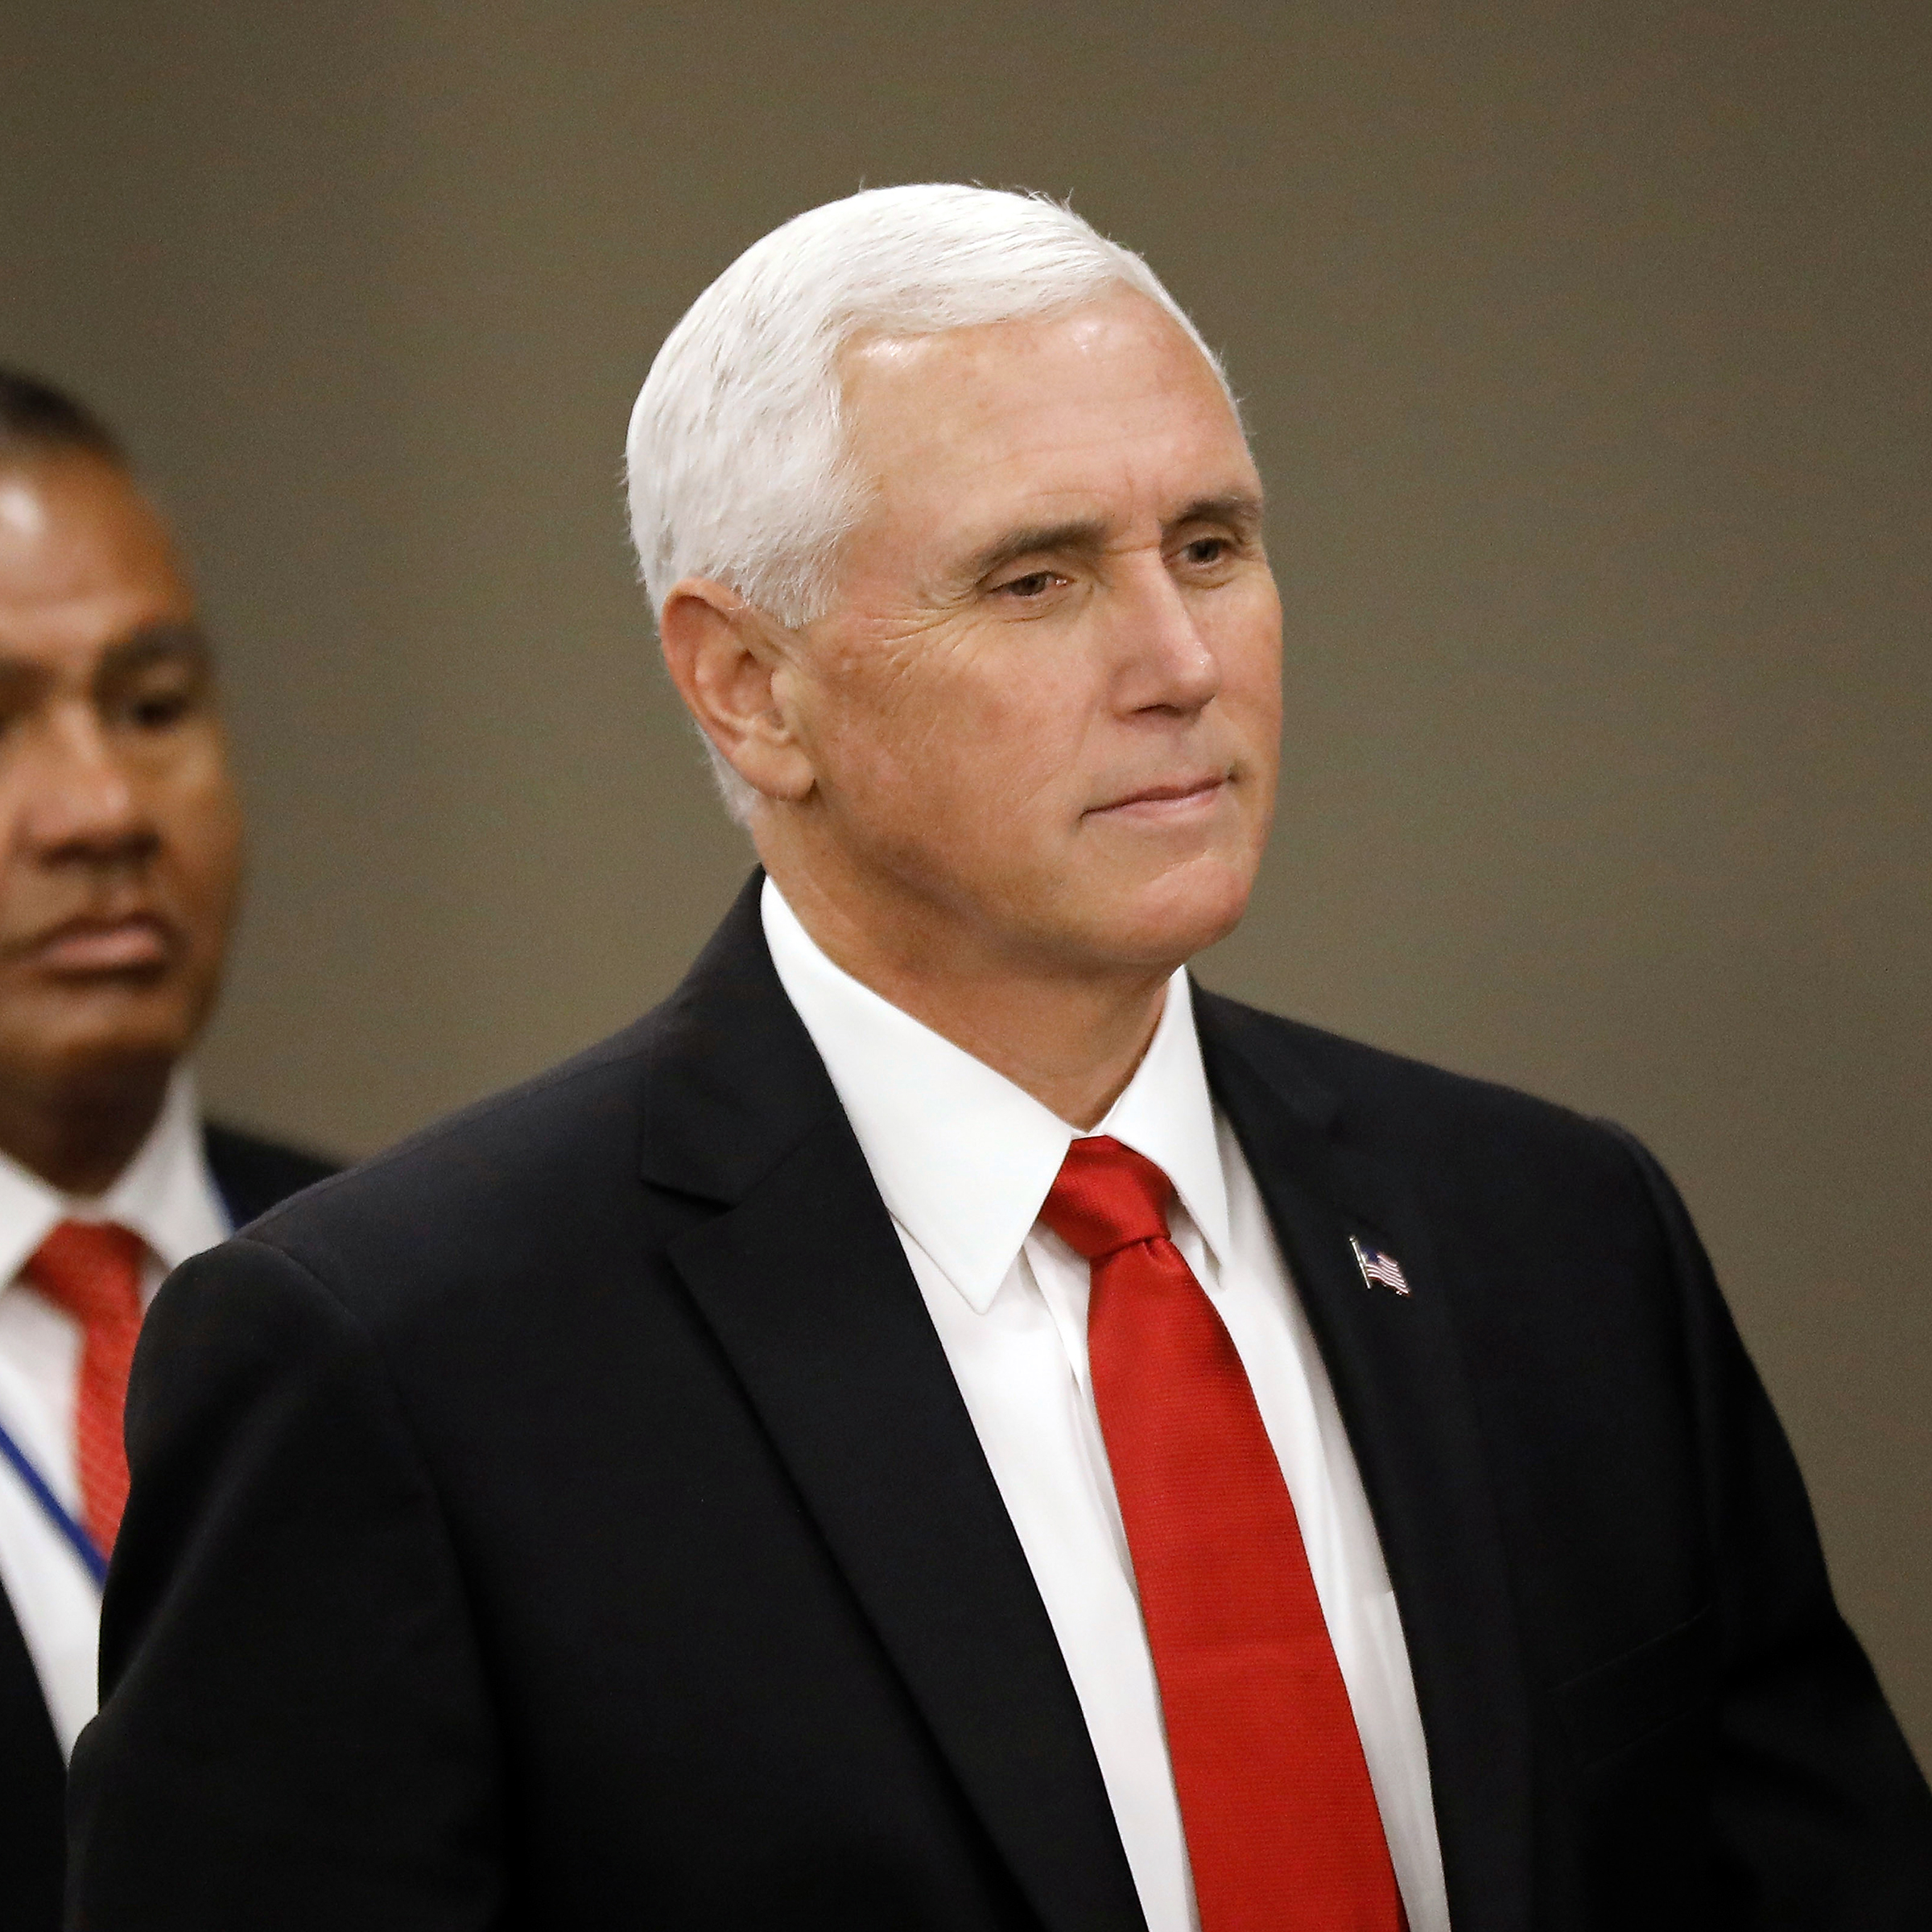 US Vice President Mike Pence arrives to the 74th session of the General Assembly of the United Nations at United Nations Headquarters in New York, New York, USA, 24 September 2019. The annual meeting of world leaders at the United Nations runs until 30 September 2019.General Debate of the 74th session of the General Assembly of the United Nations, New York, USA - 23 Sep 2019